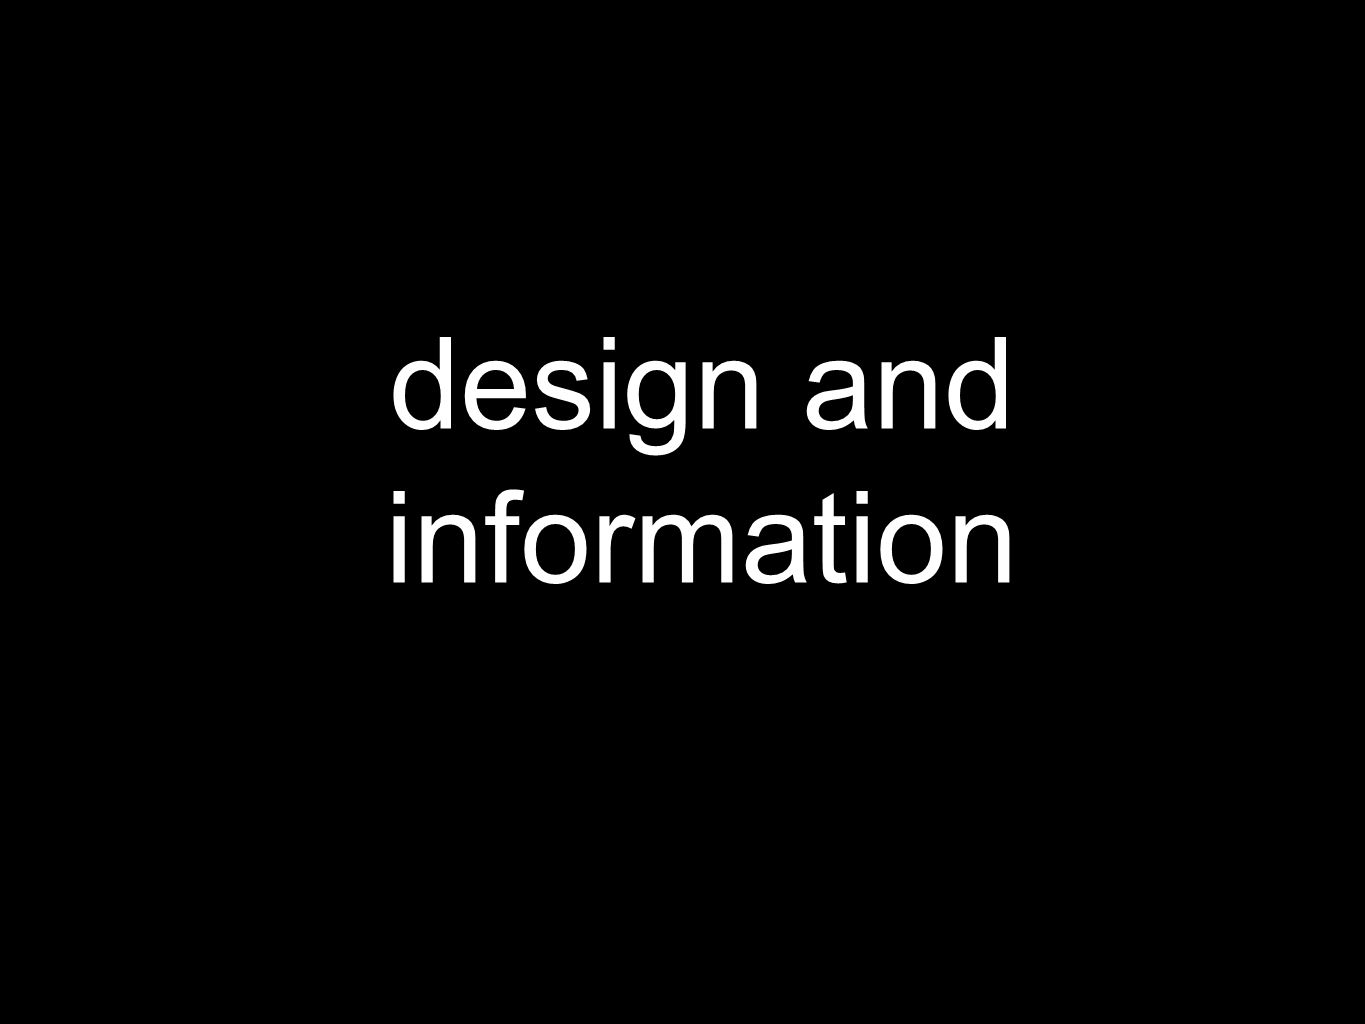 design and information